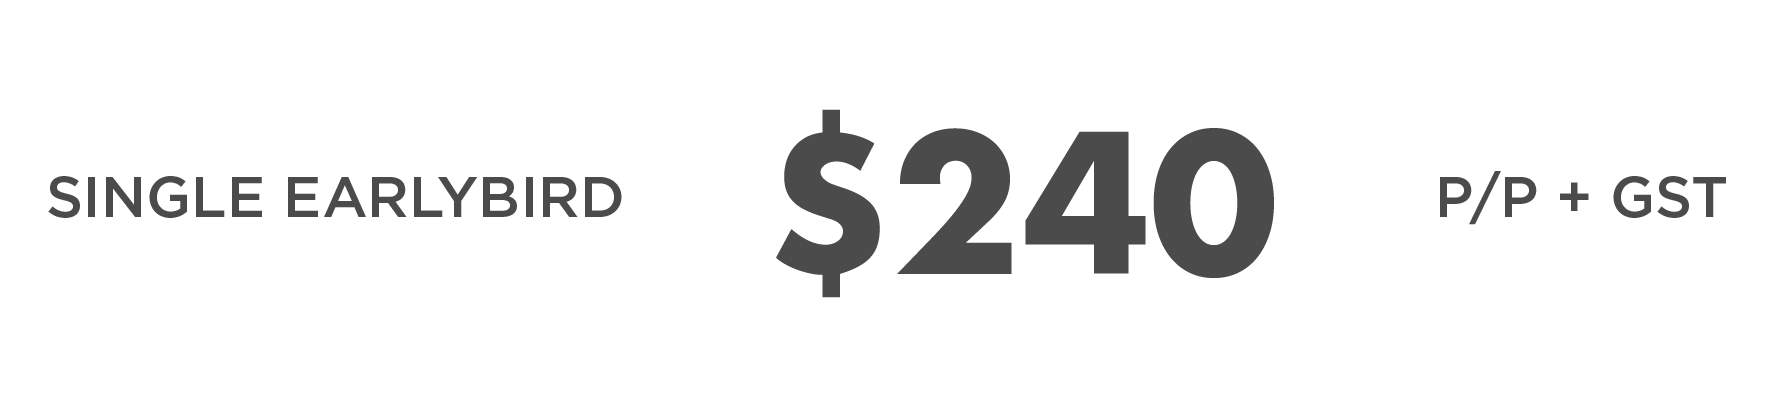 pricing-02.png